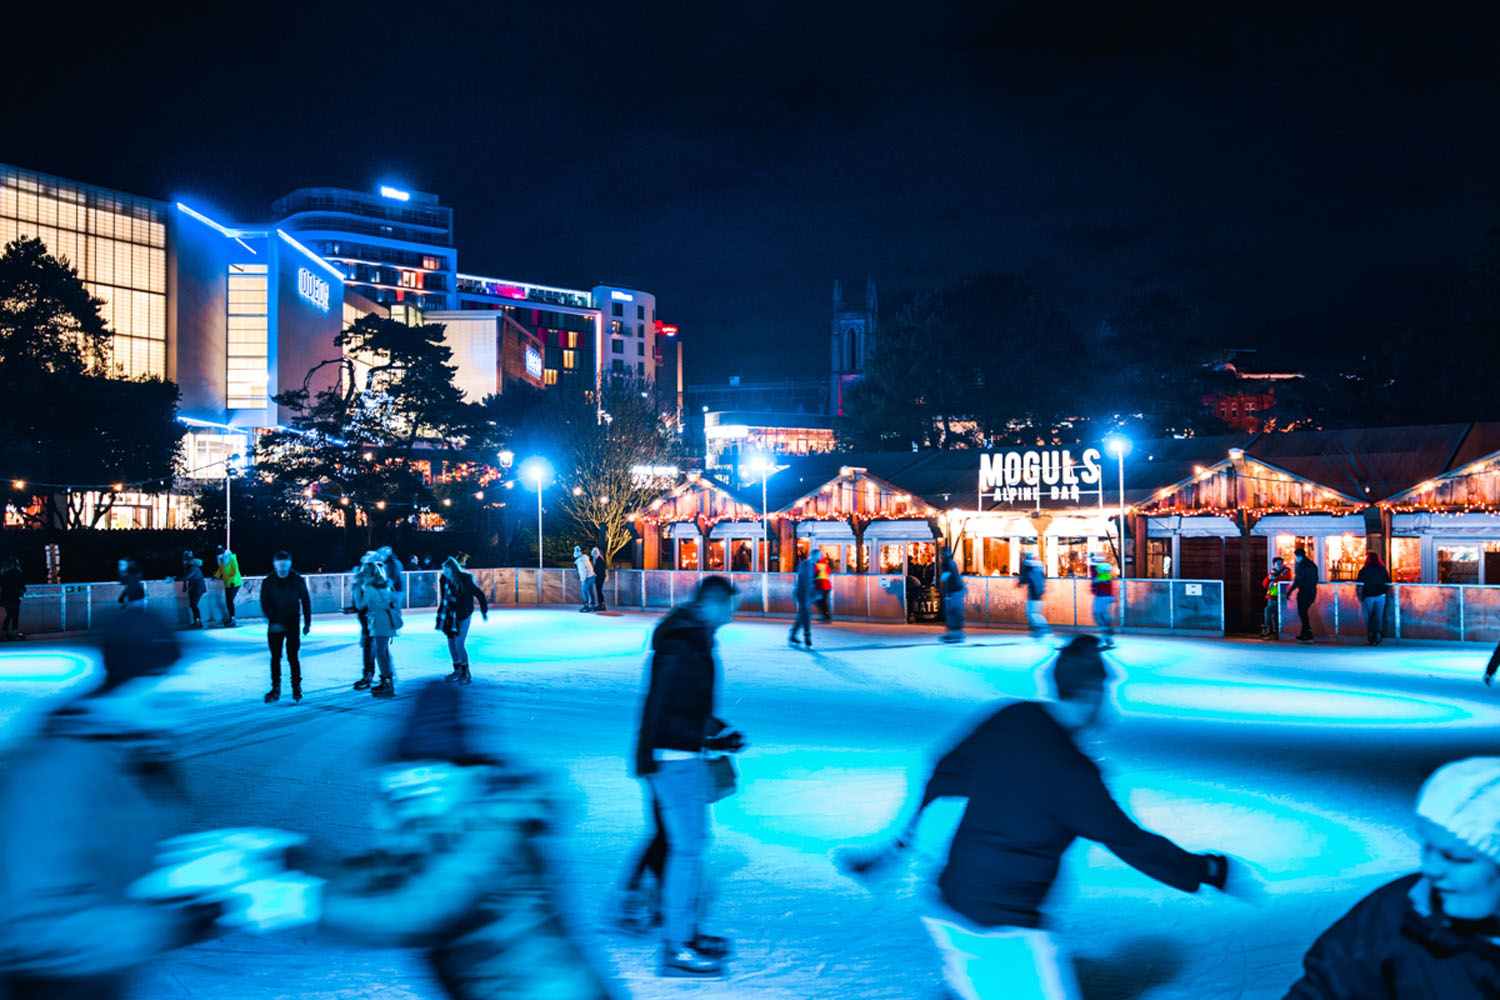 Outdoor skating rink in Bournemouth's Lower Gardens.